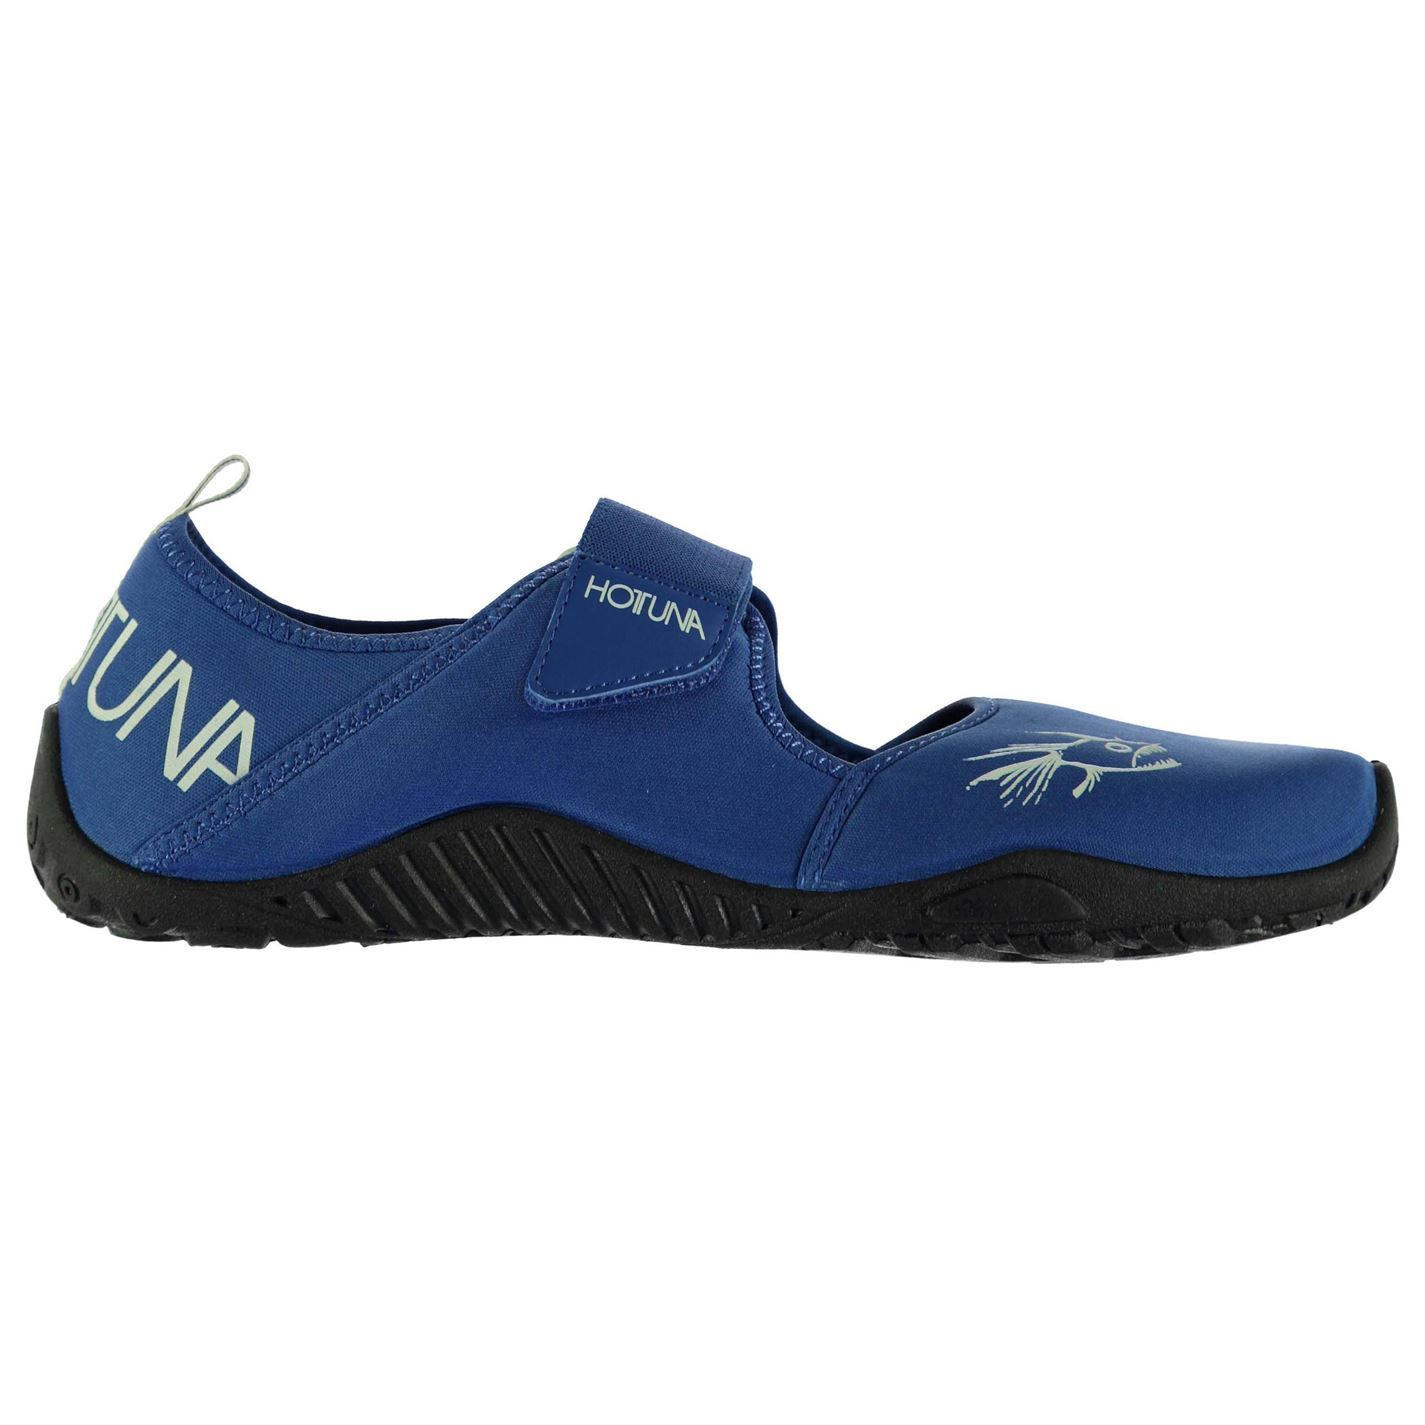 Hot-Tuna-Mens-Splasher-Sandals-Shoes-Water-Sports-Swimming-amp-Beach